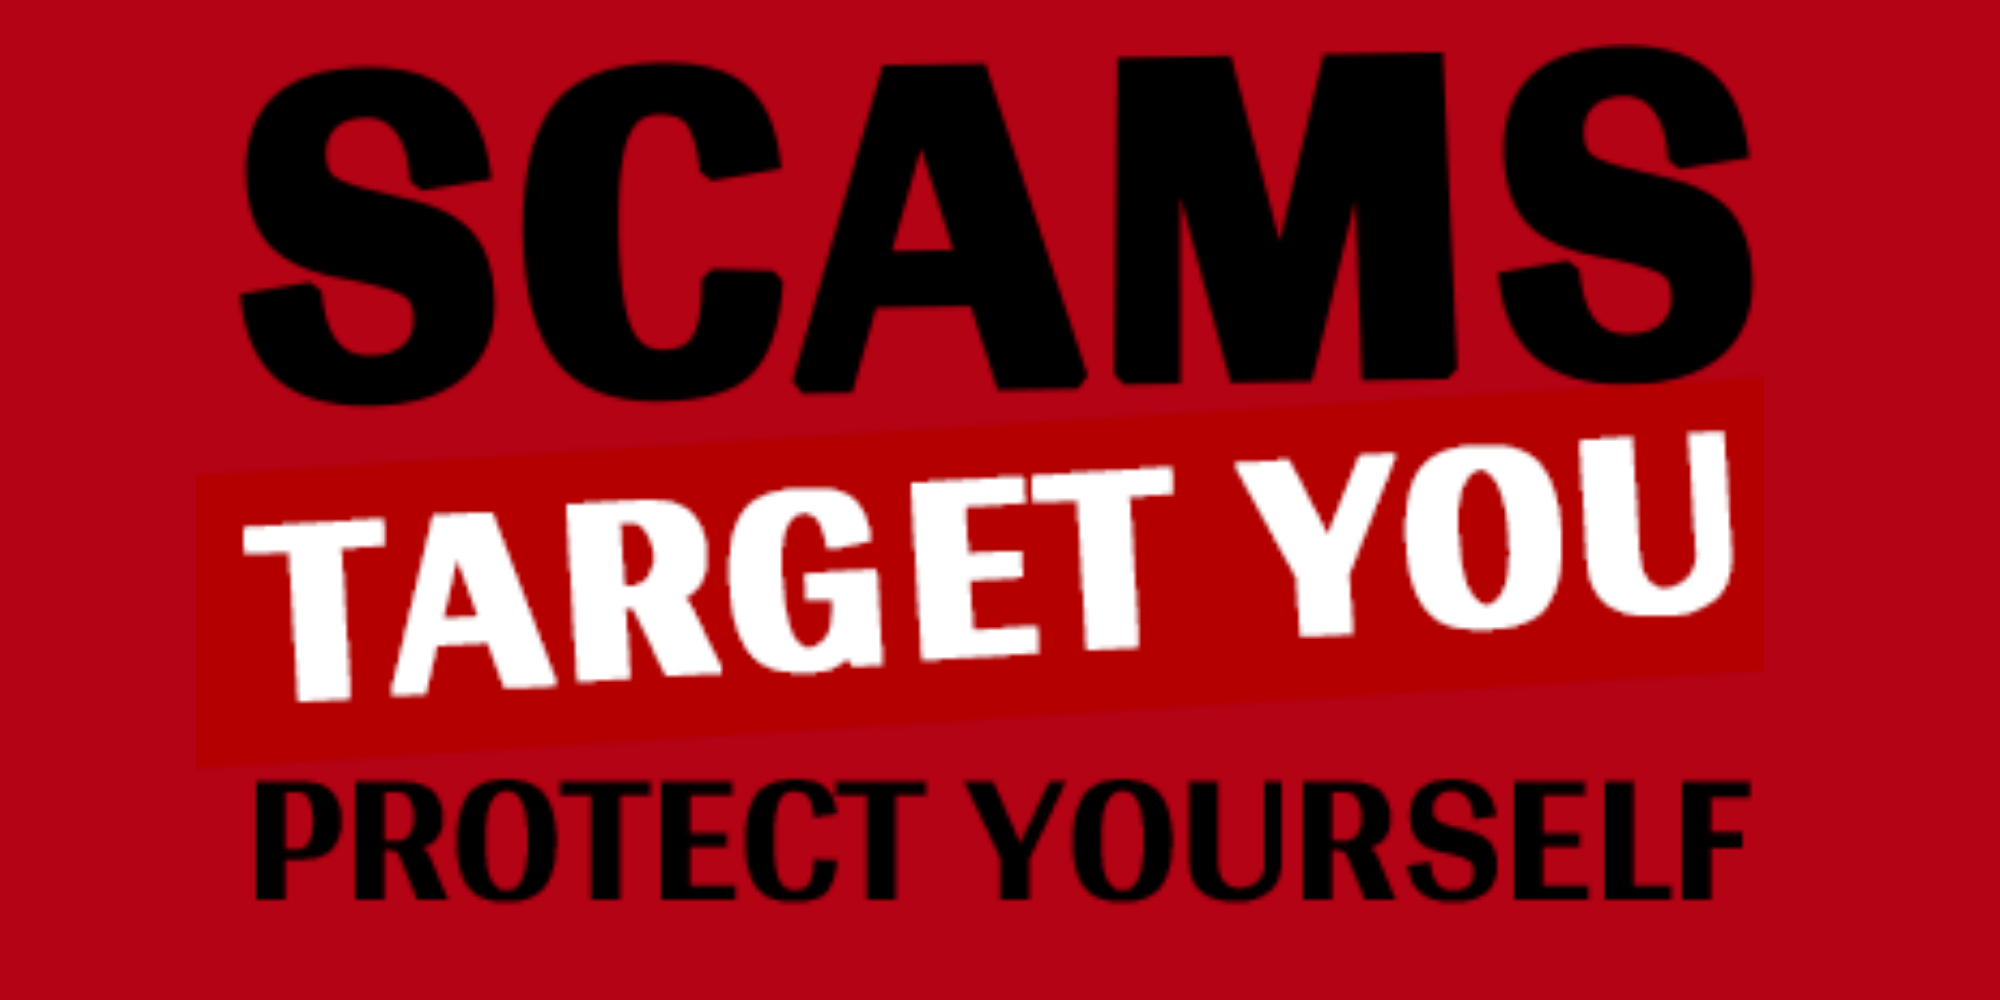 Elderly residents Scammed almost $20,000 dollars in Sydney South West.